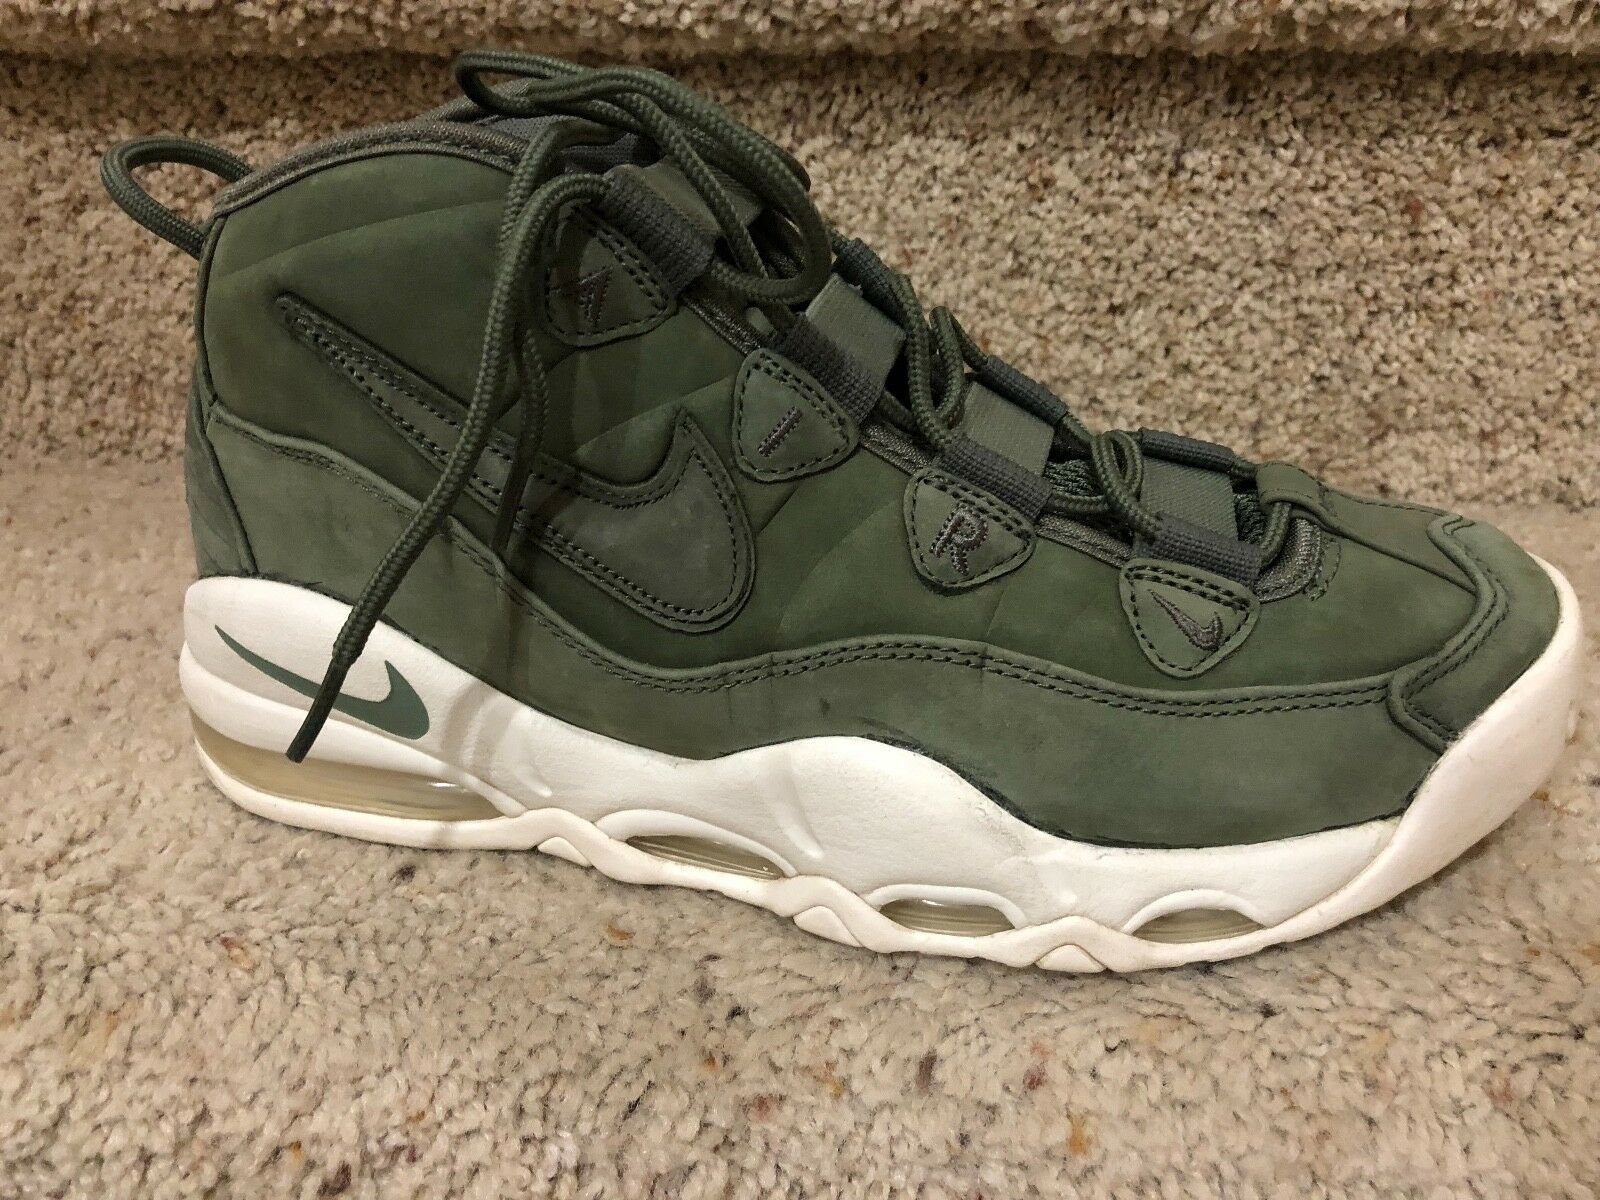 Nike Air Max Uptempo Urban Haze Olive Men's Basketball Shoes 311090-301 Size 9.5